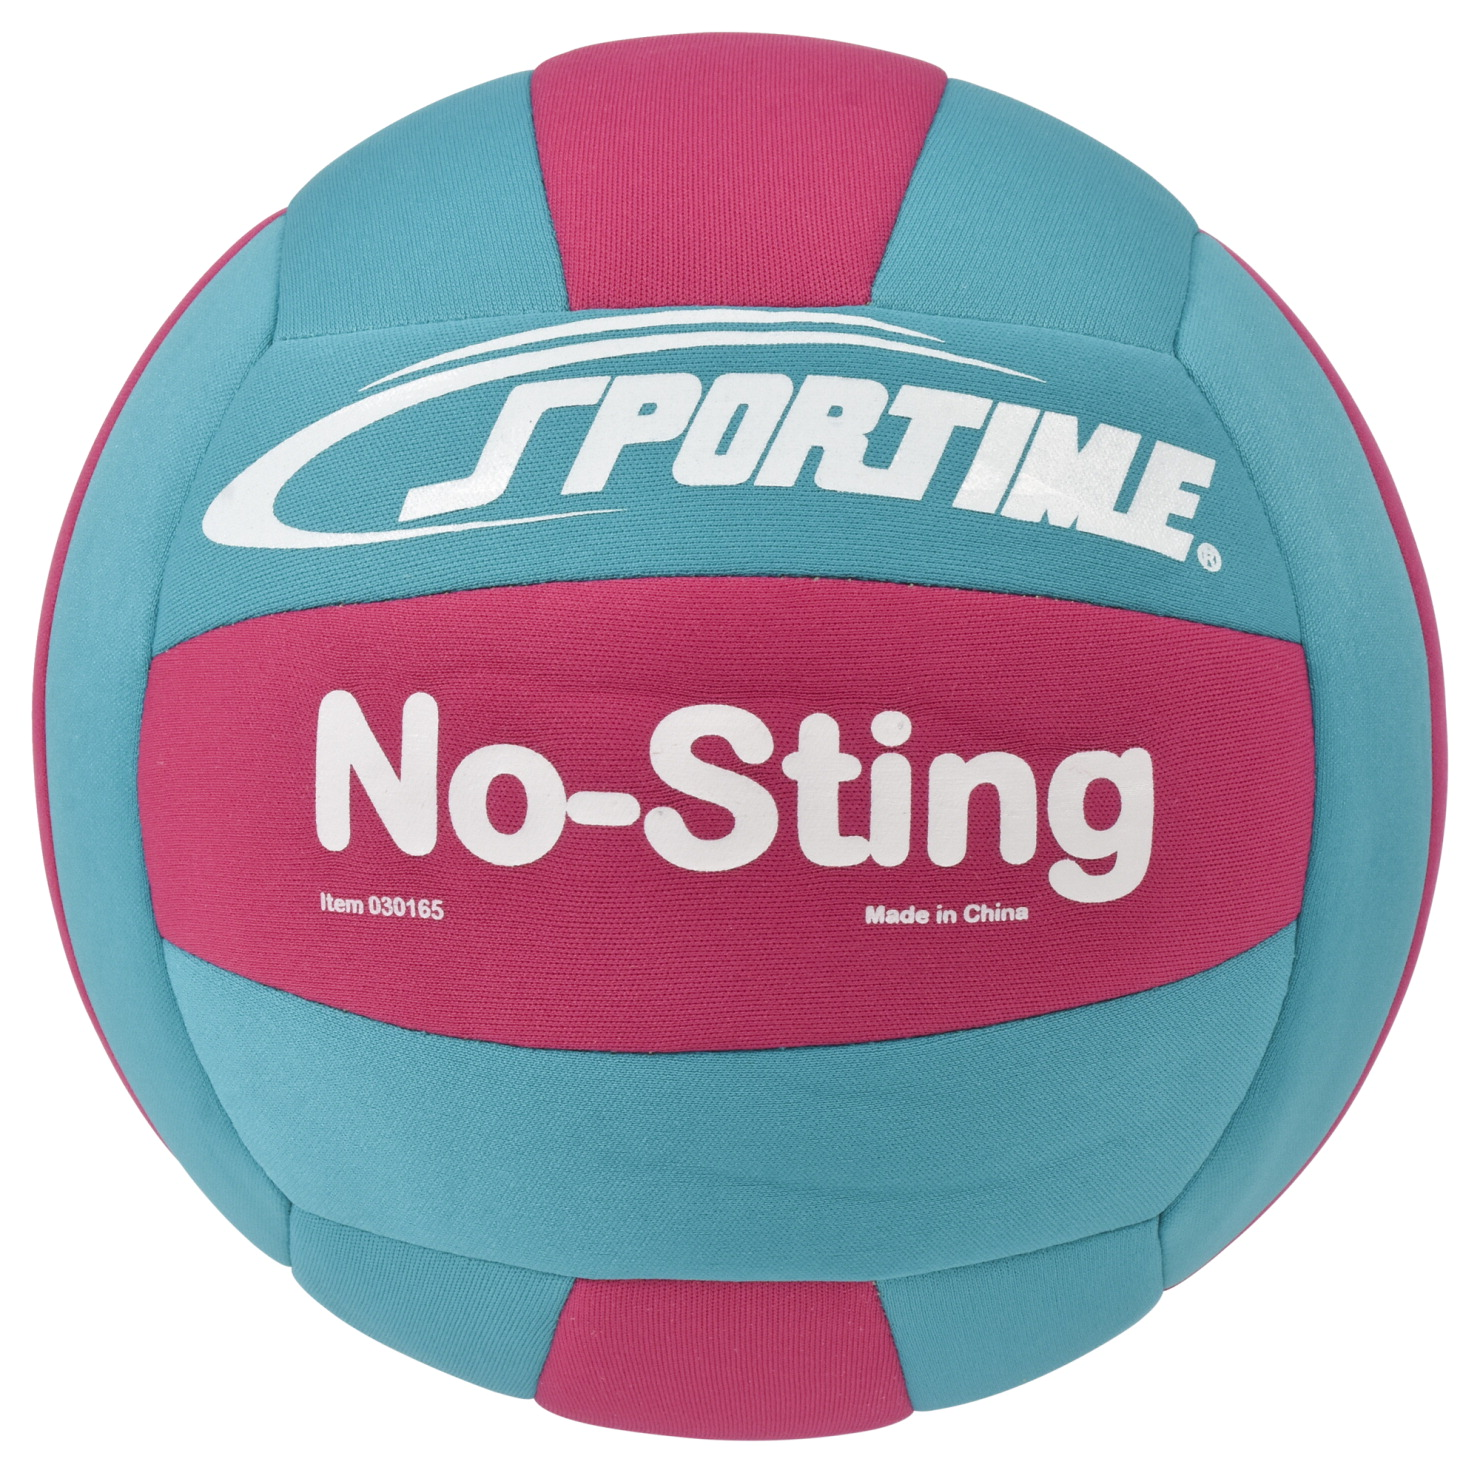 Sportime No-Sting Volleyball, 8 Ounces, Teal/Pink